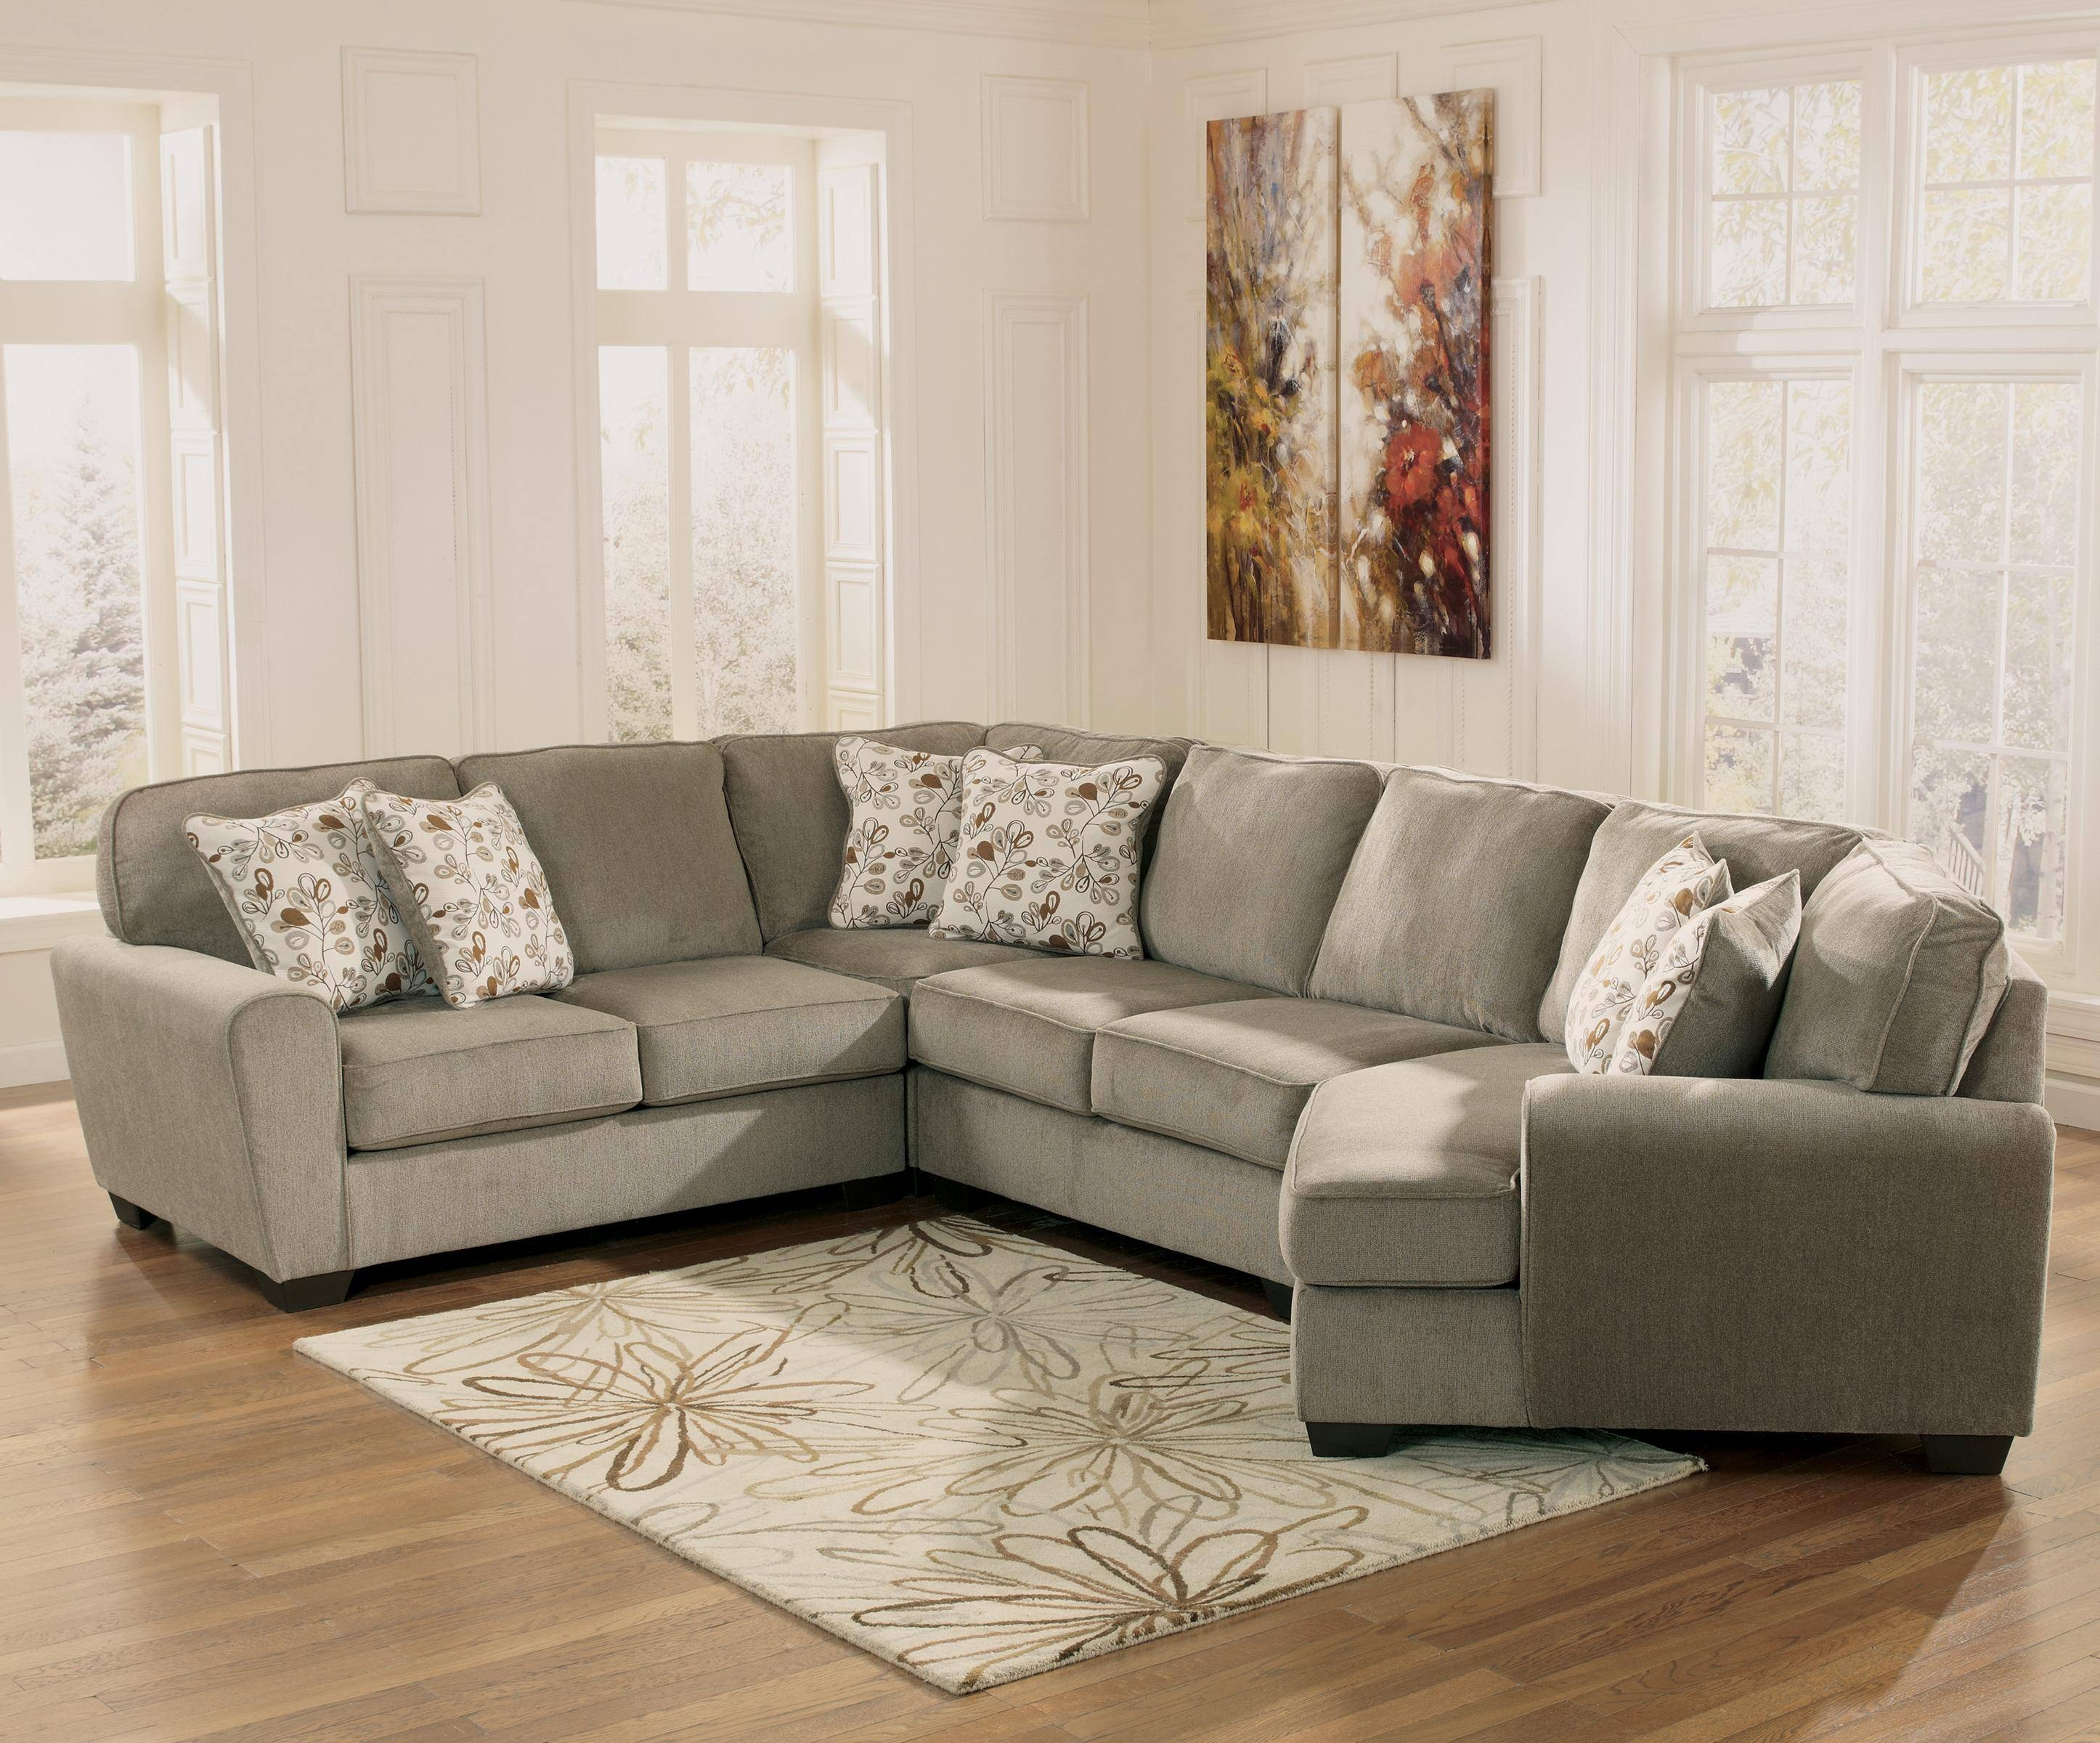 Patina 4-Piece Small Sectional With Right Cuddler - Rotmans - Sofa pertaining to Sectional Sofa With Cuddler Chaise (Image 14 of 25)